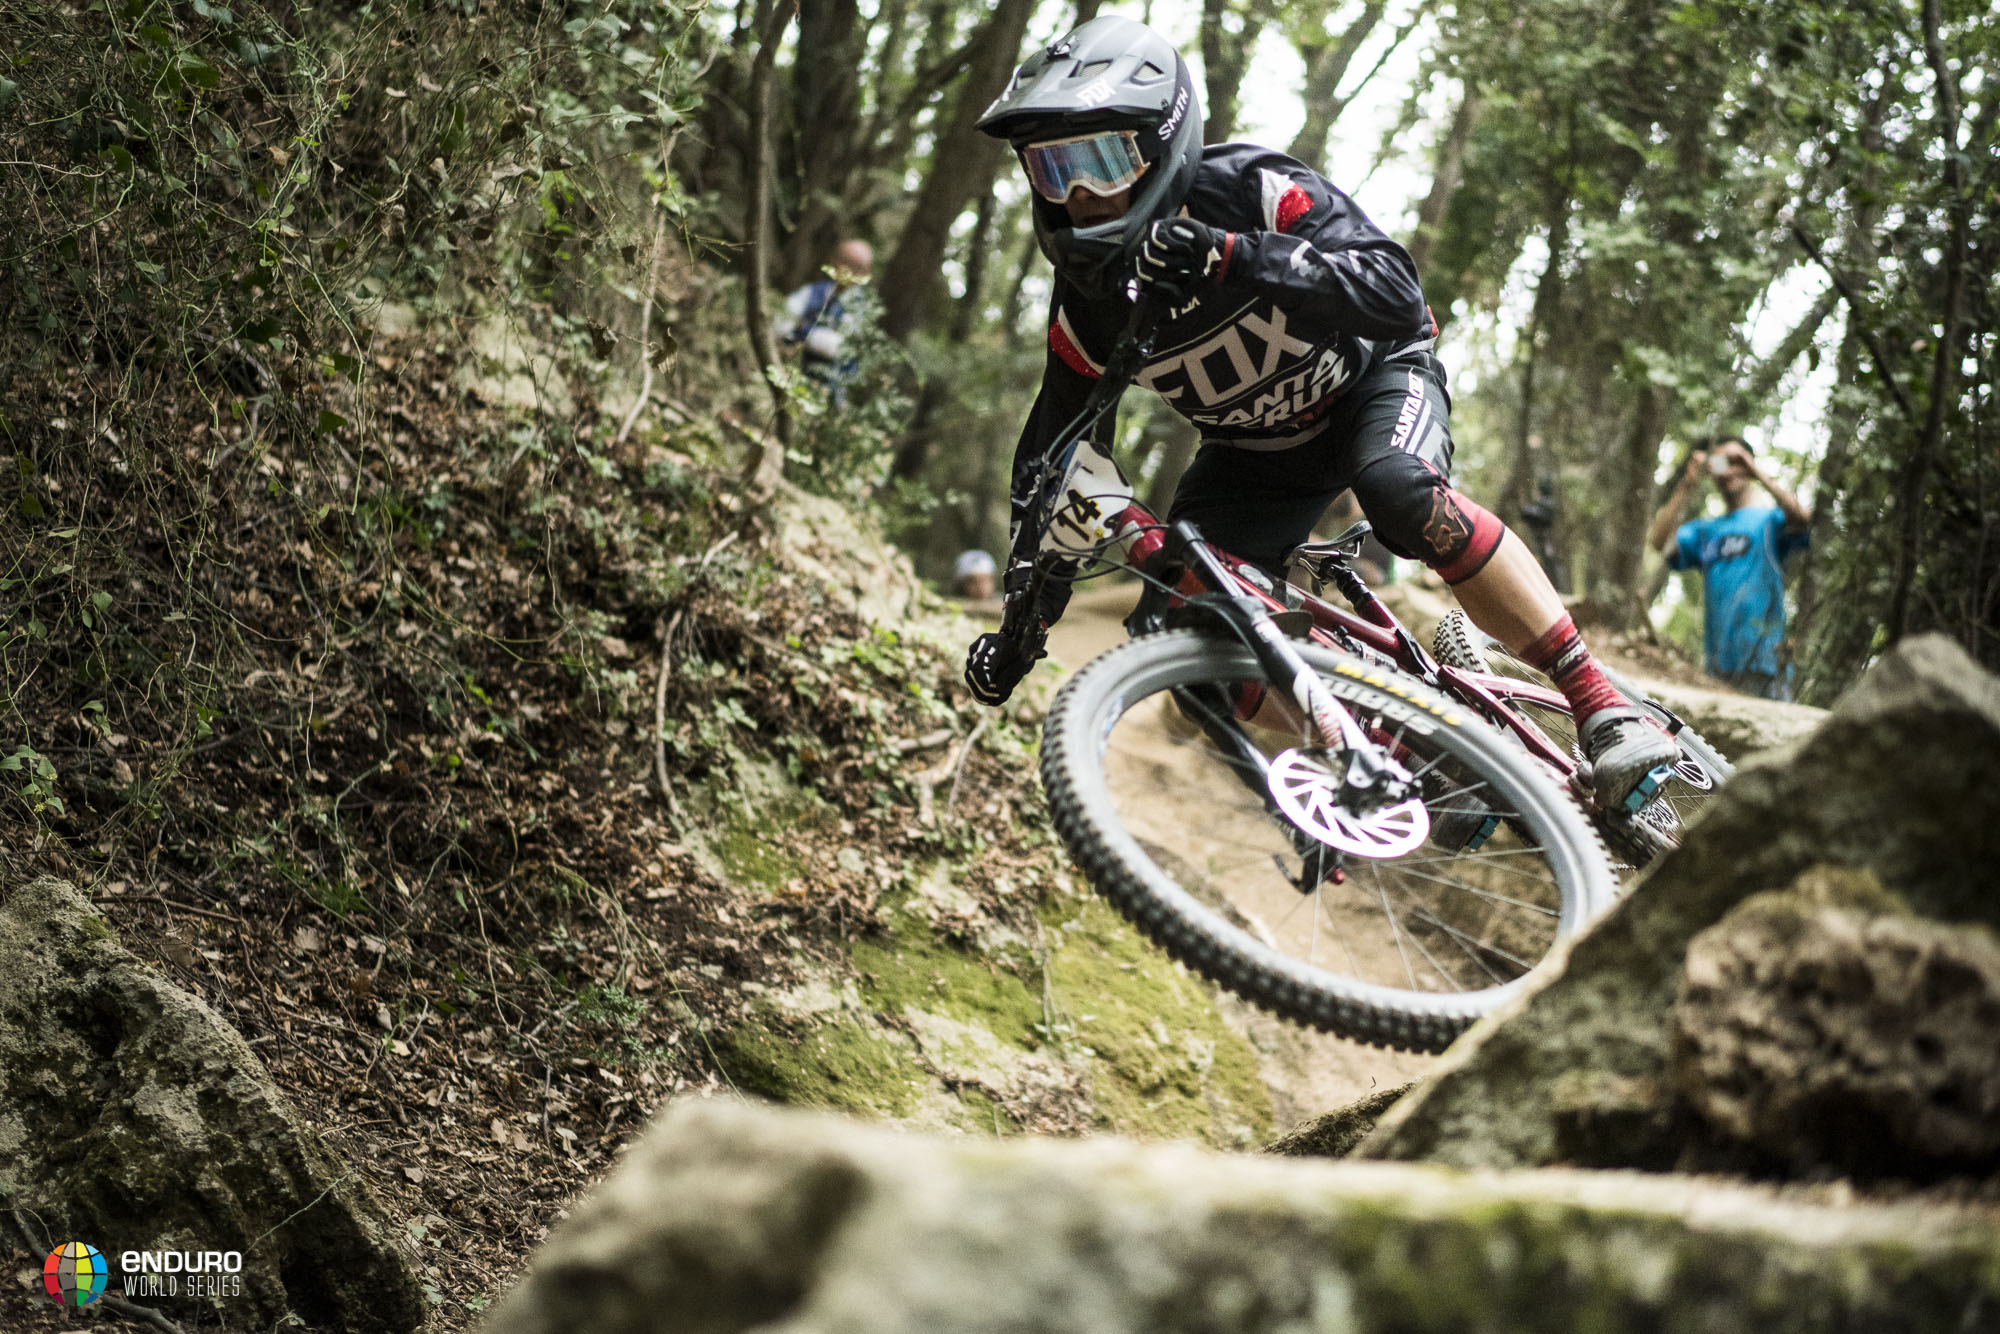 Mark Scott sits in 11th, so close to getting an EWS top 10!